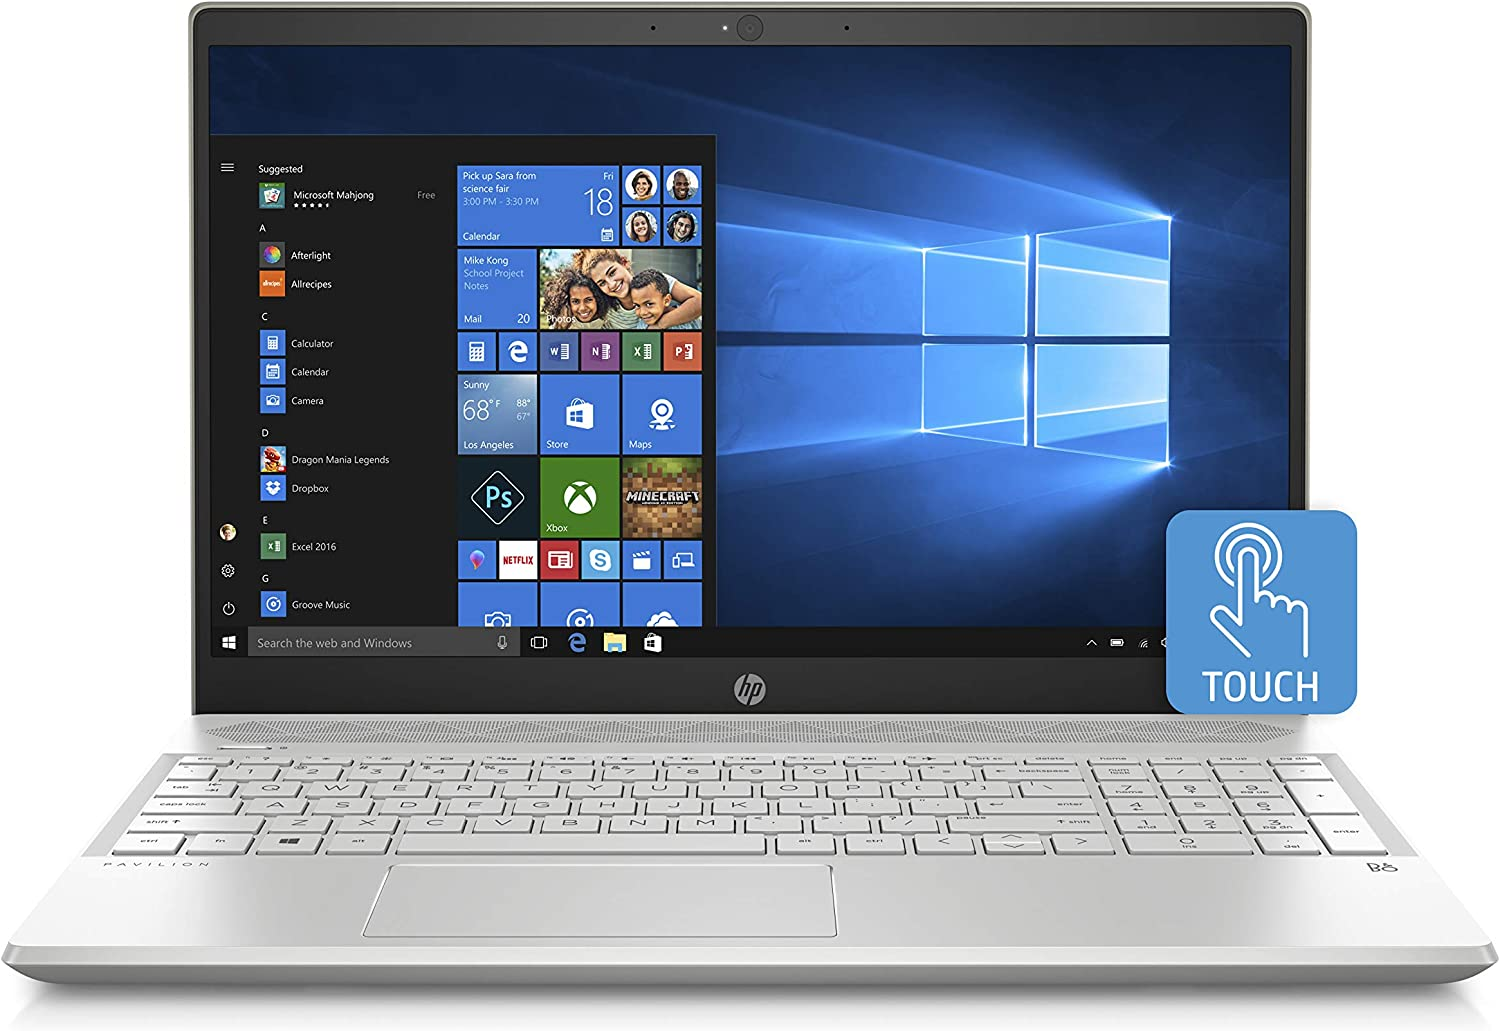 "HP Pavilion 15.6"" Touchscreen Notebook PC - AMD Ryzen 7 Quad Core 2.3GHz 12GB RAM 512GB SSD Webcam Windows 10 (Renewed)"